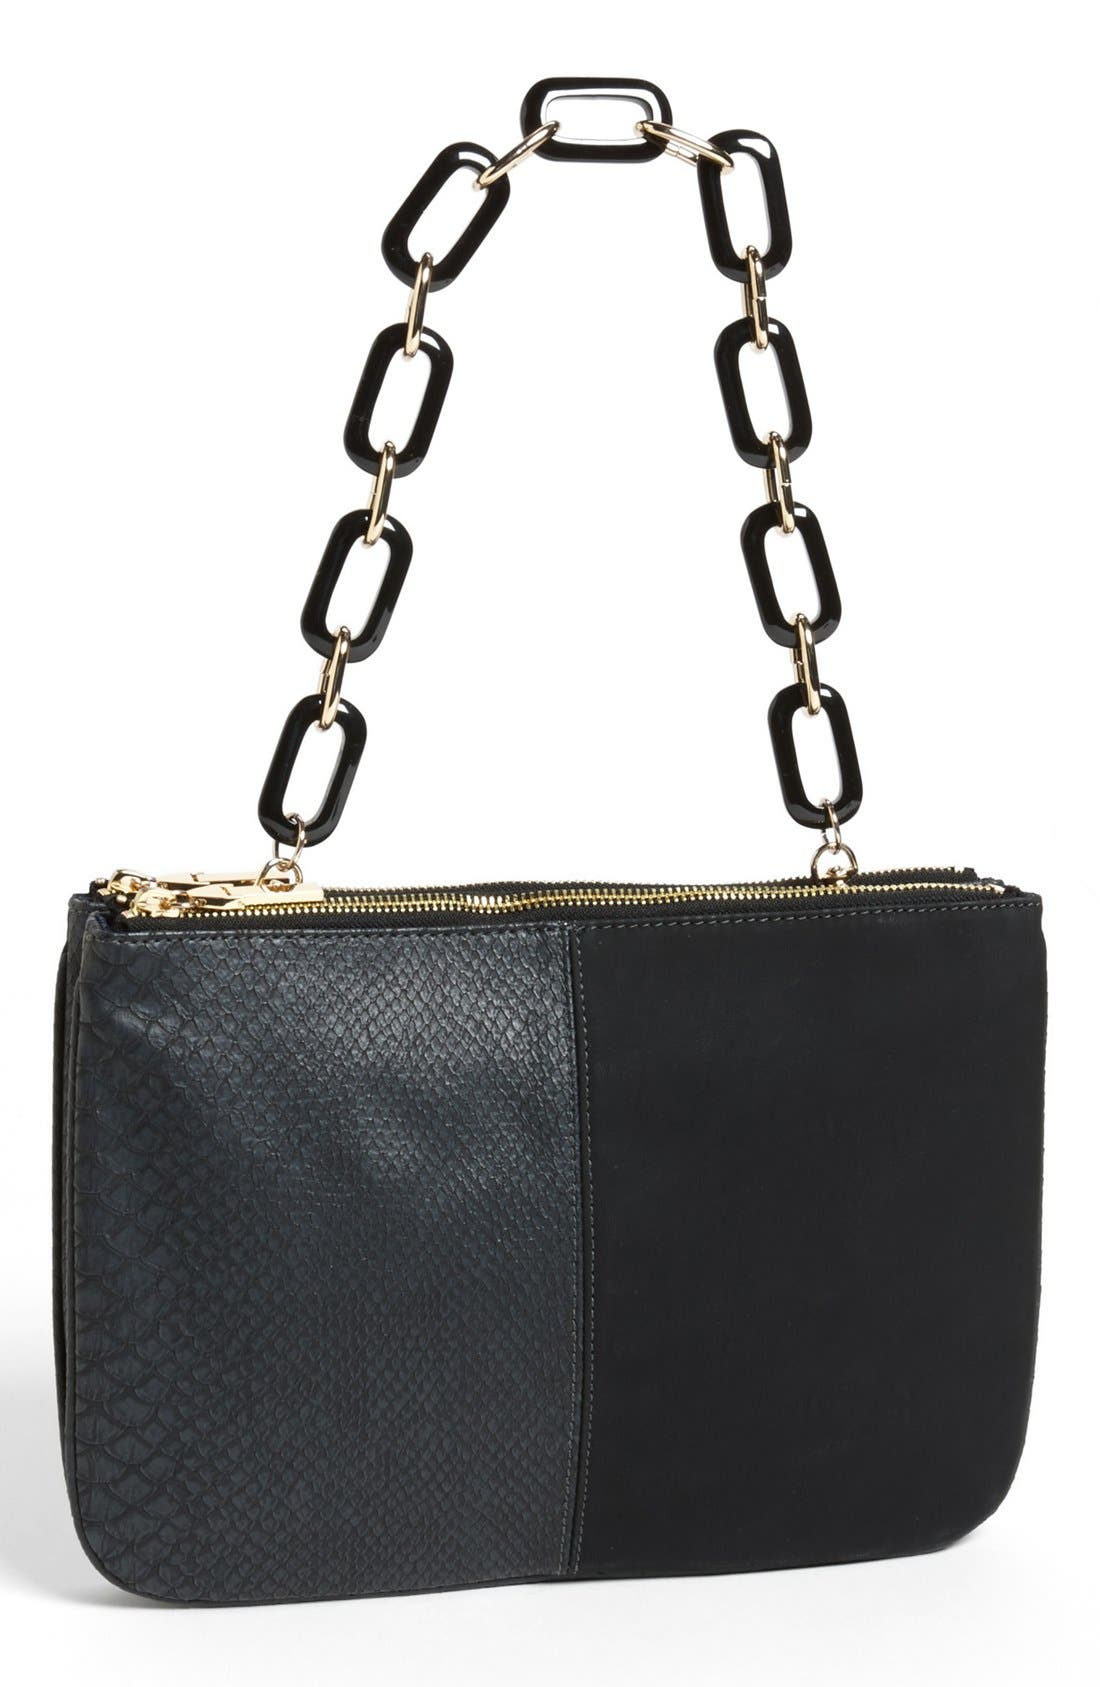 Main Image - French Connection 'VIP Party' Chain Clutch